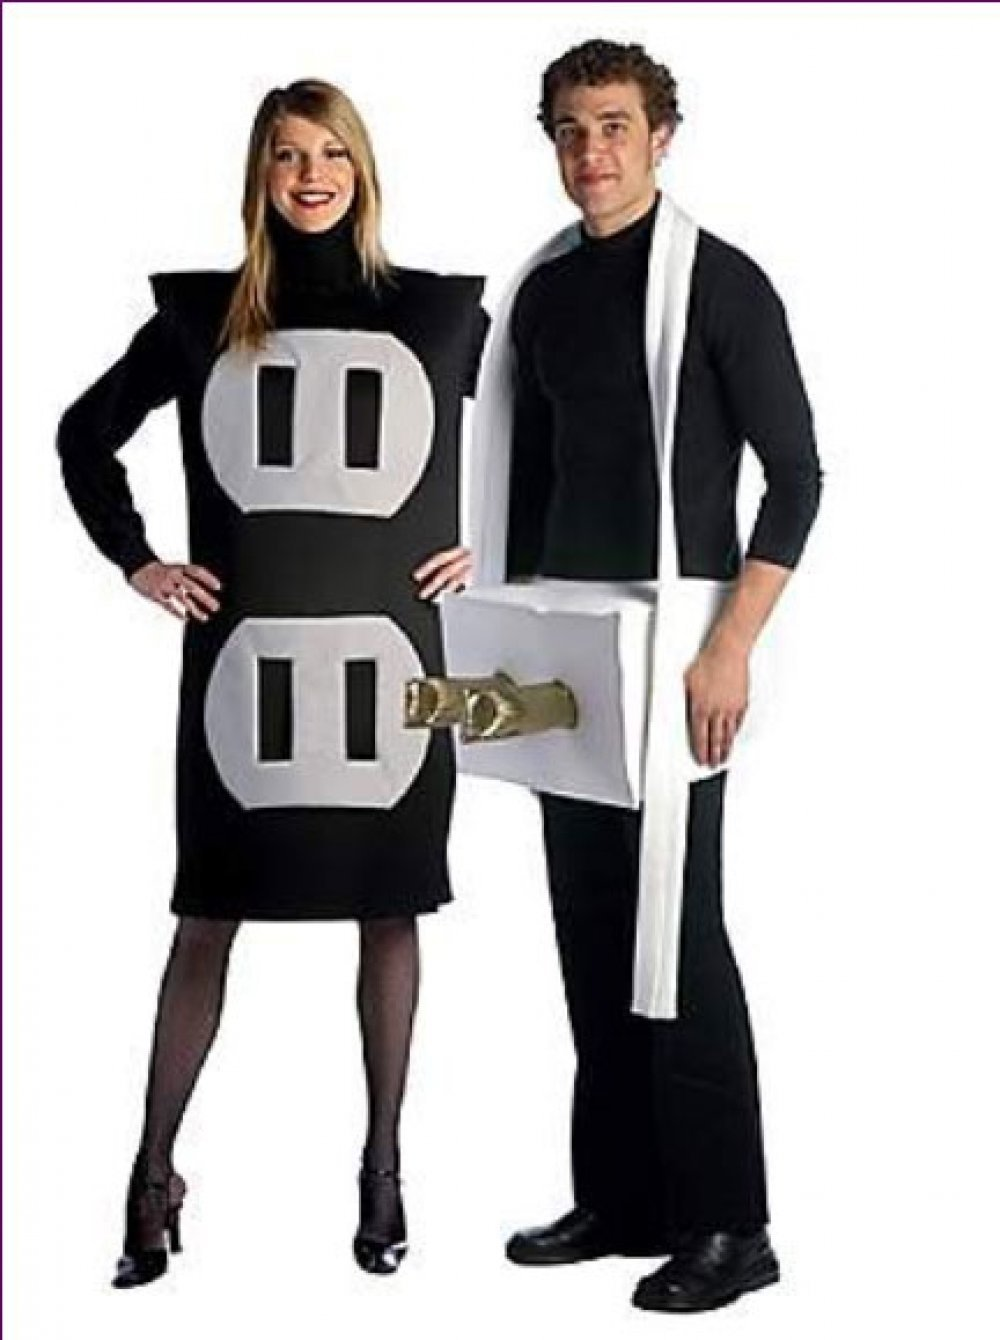 10 Most Popular Funny Couples Halloween Costume Ideas funny fun lol couple halloween costumes pics images photos pictures 2021